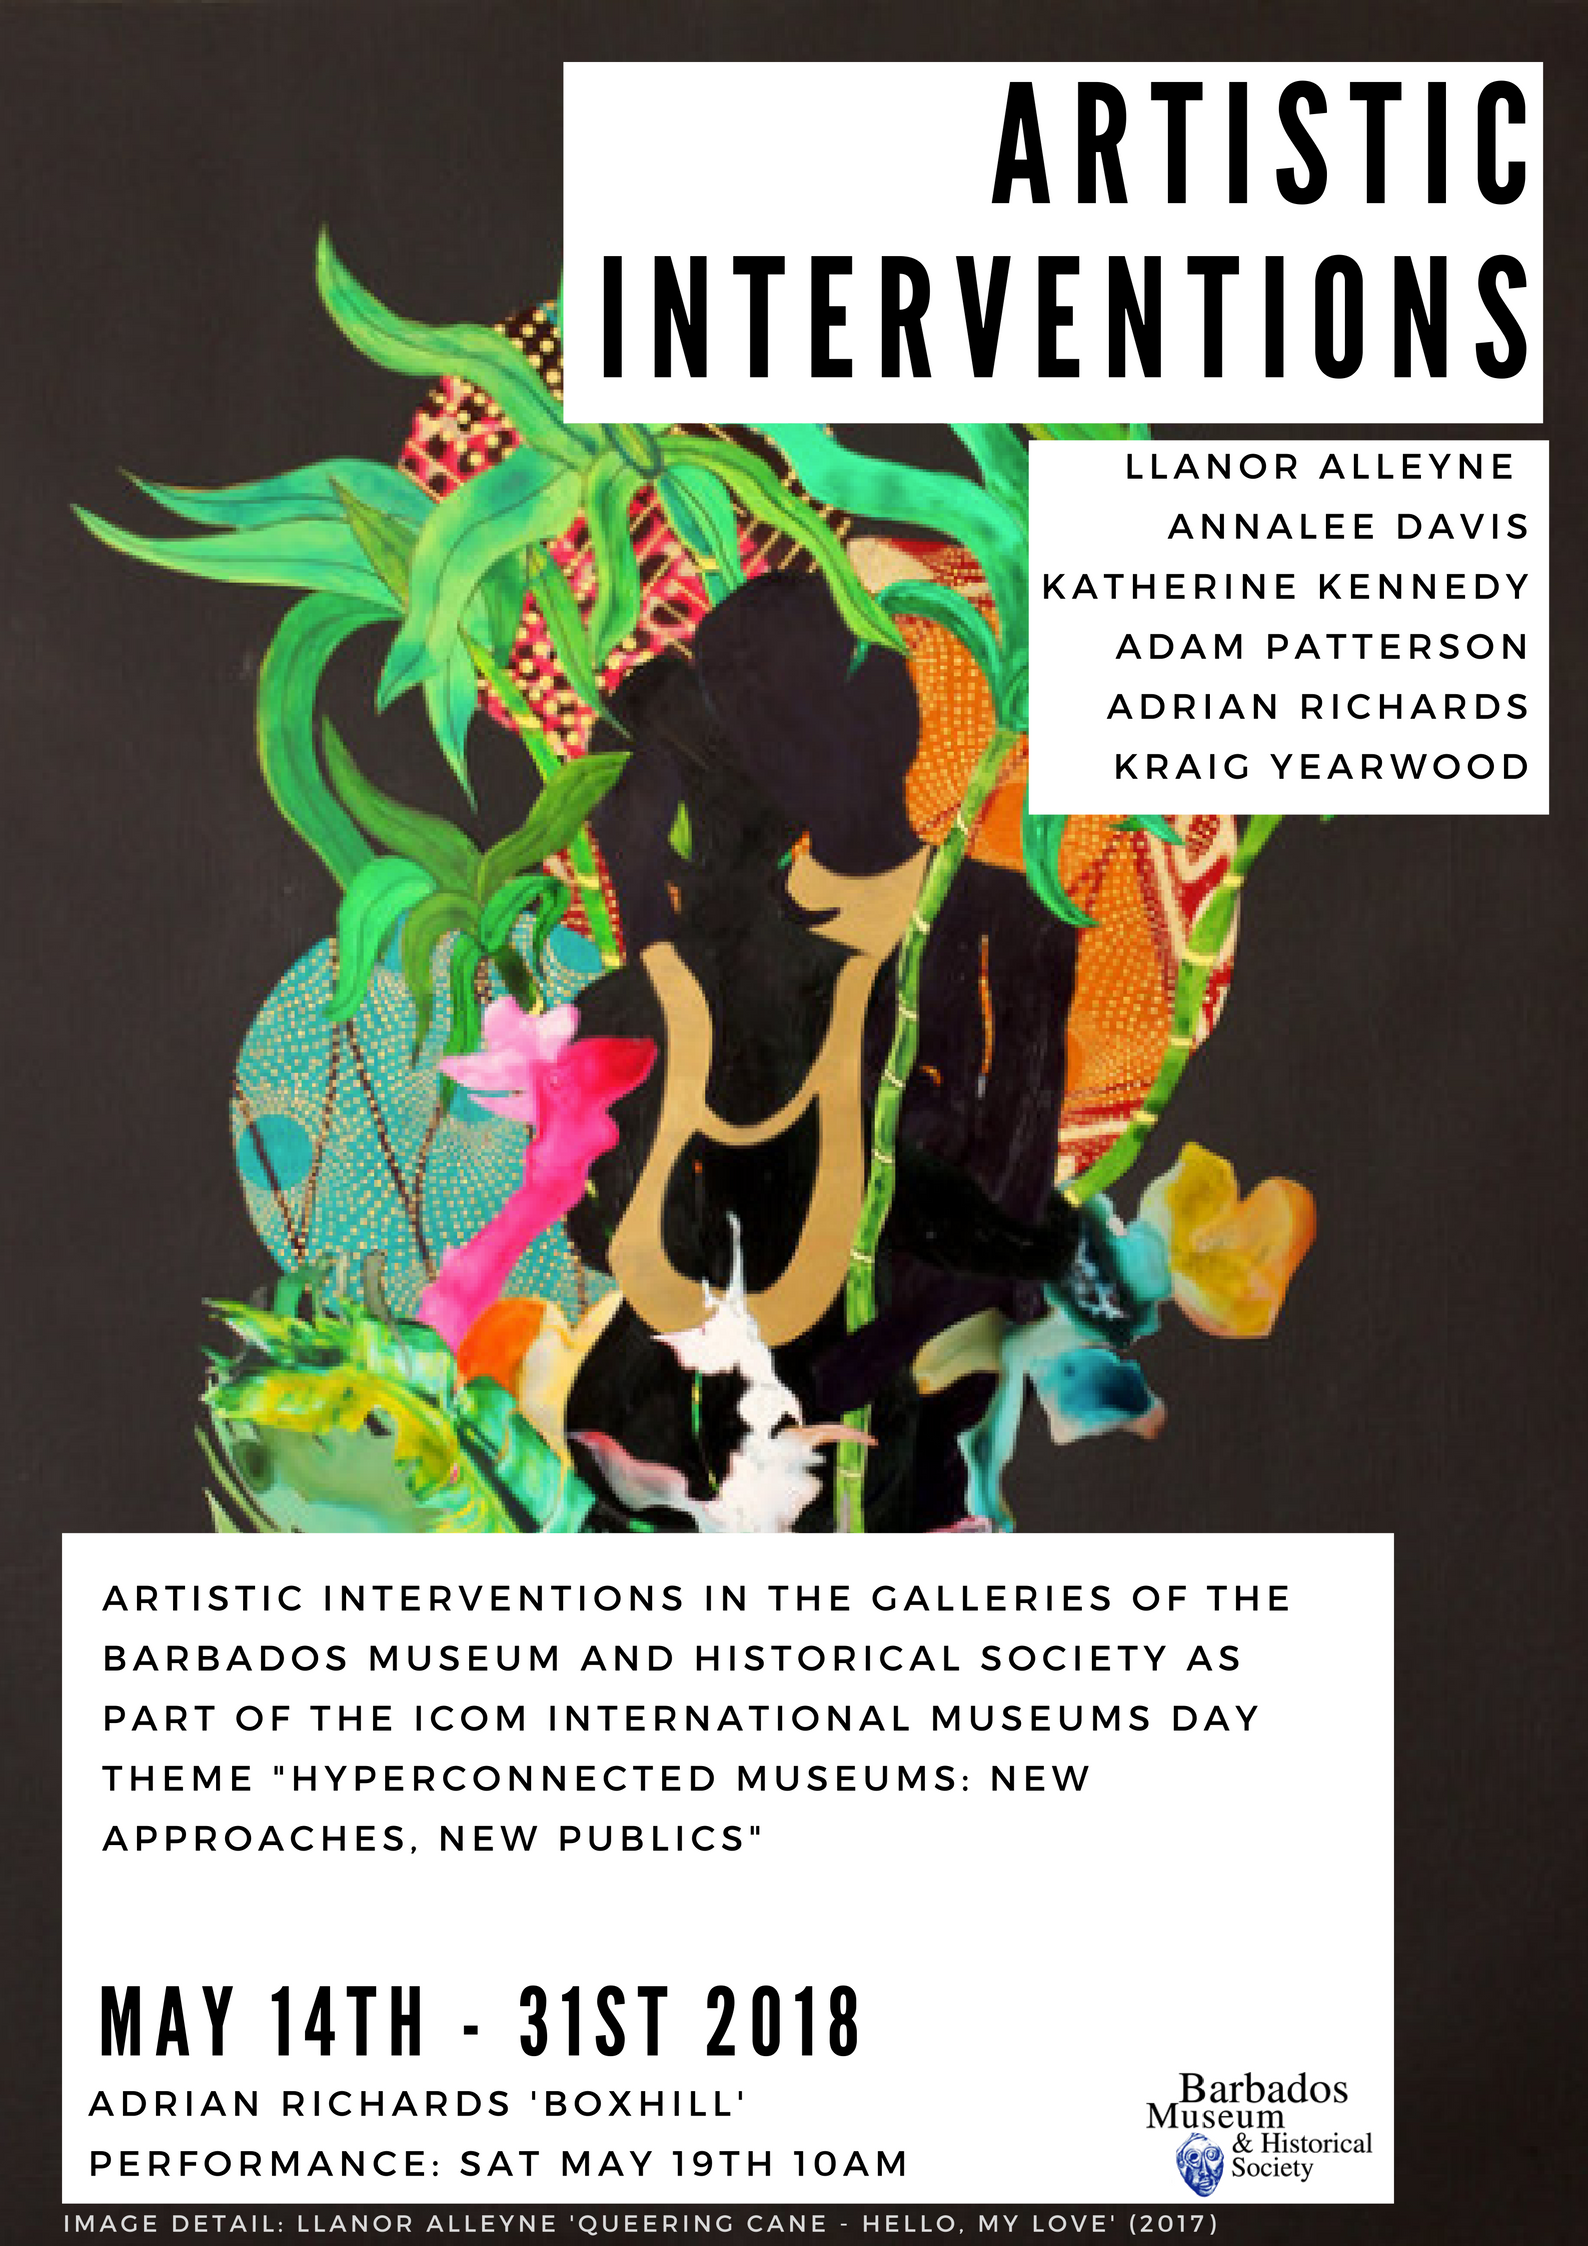 Artistic Intervention flyer L.Alleyne.png